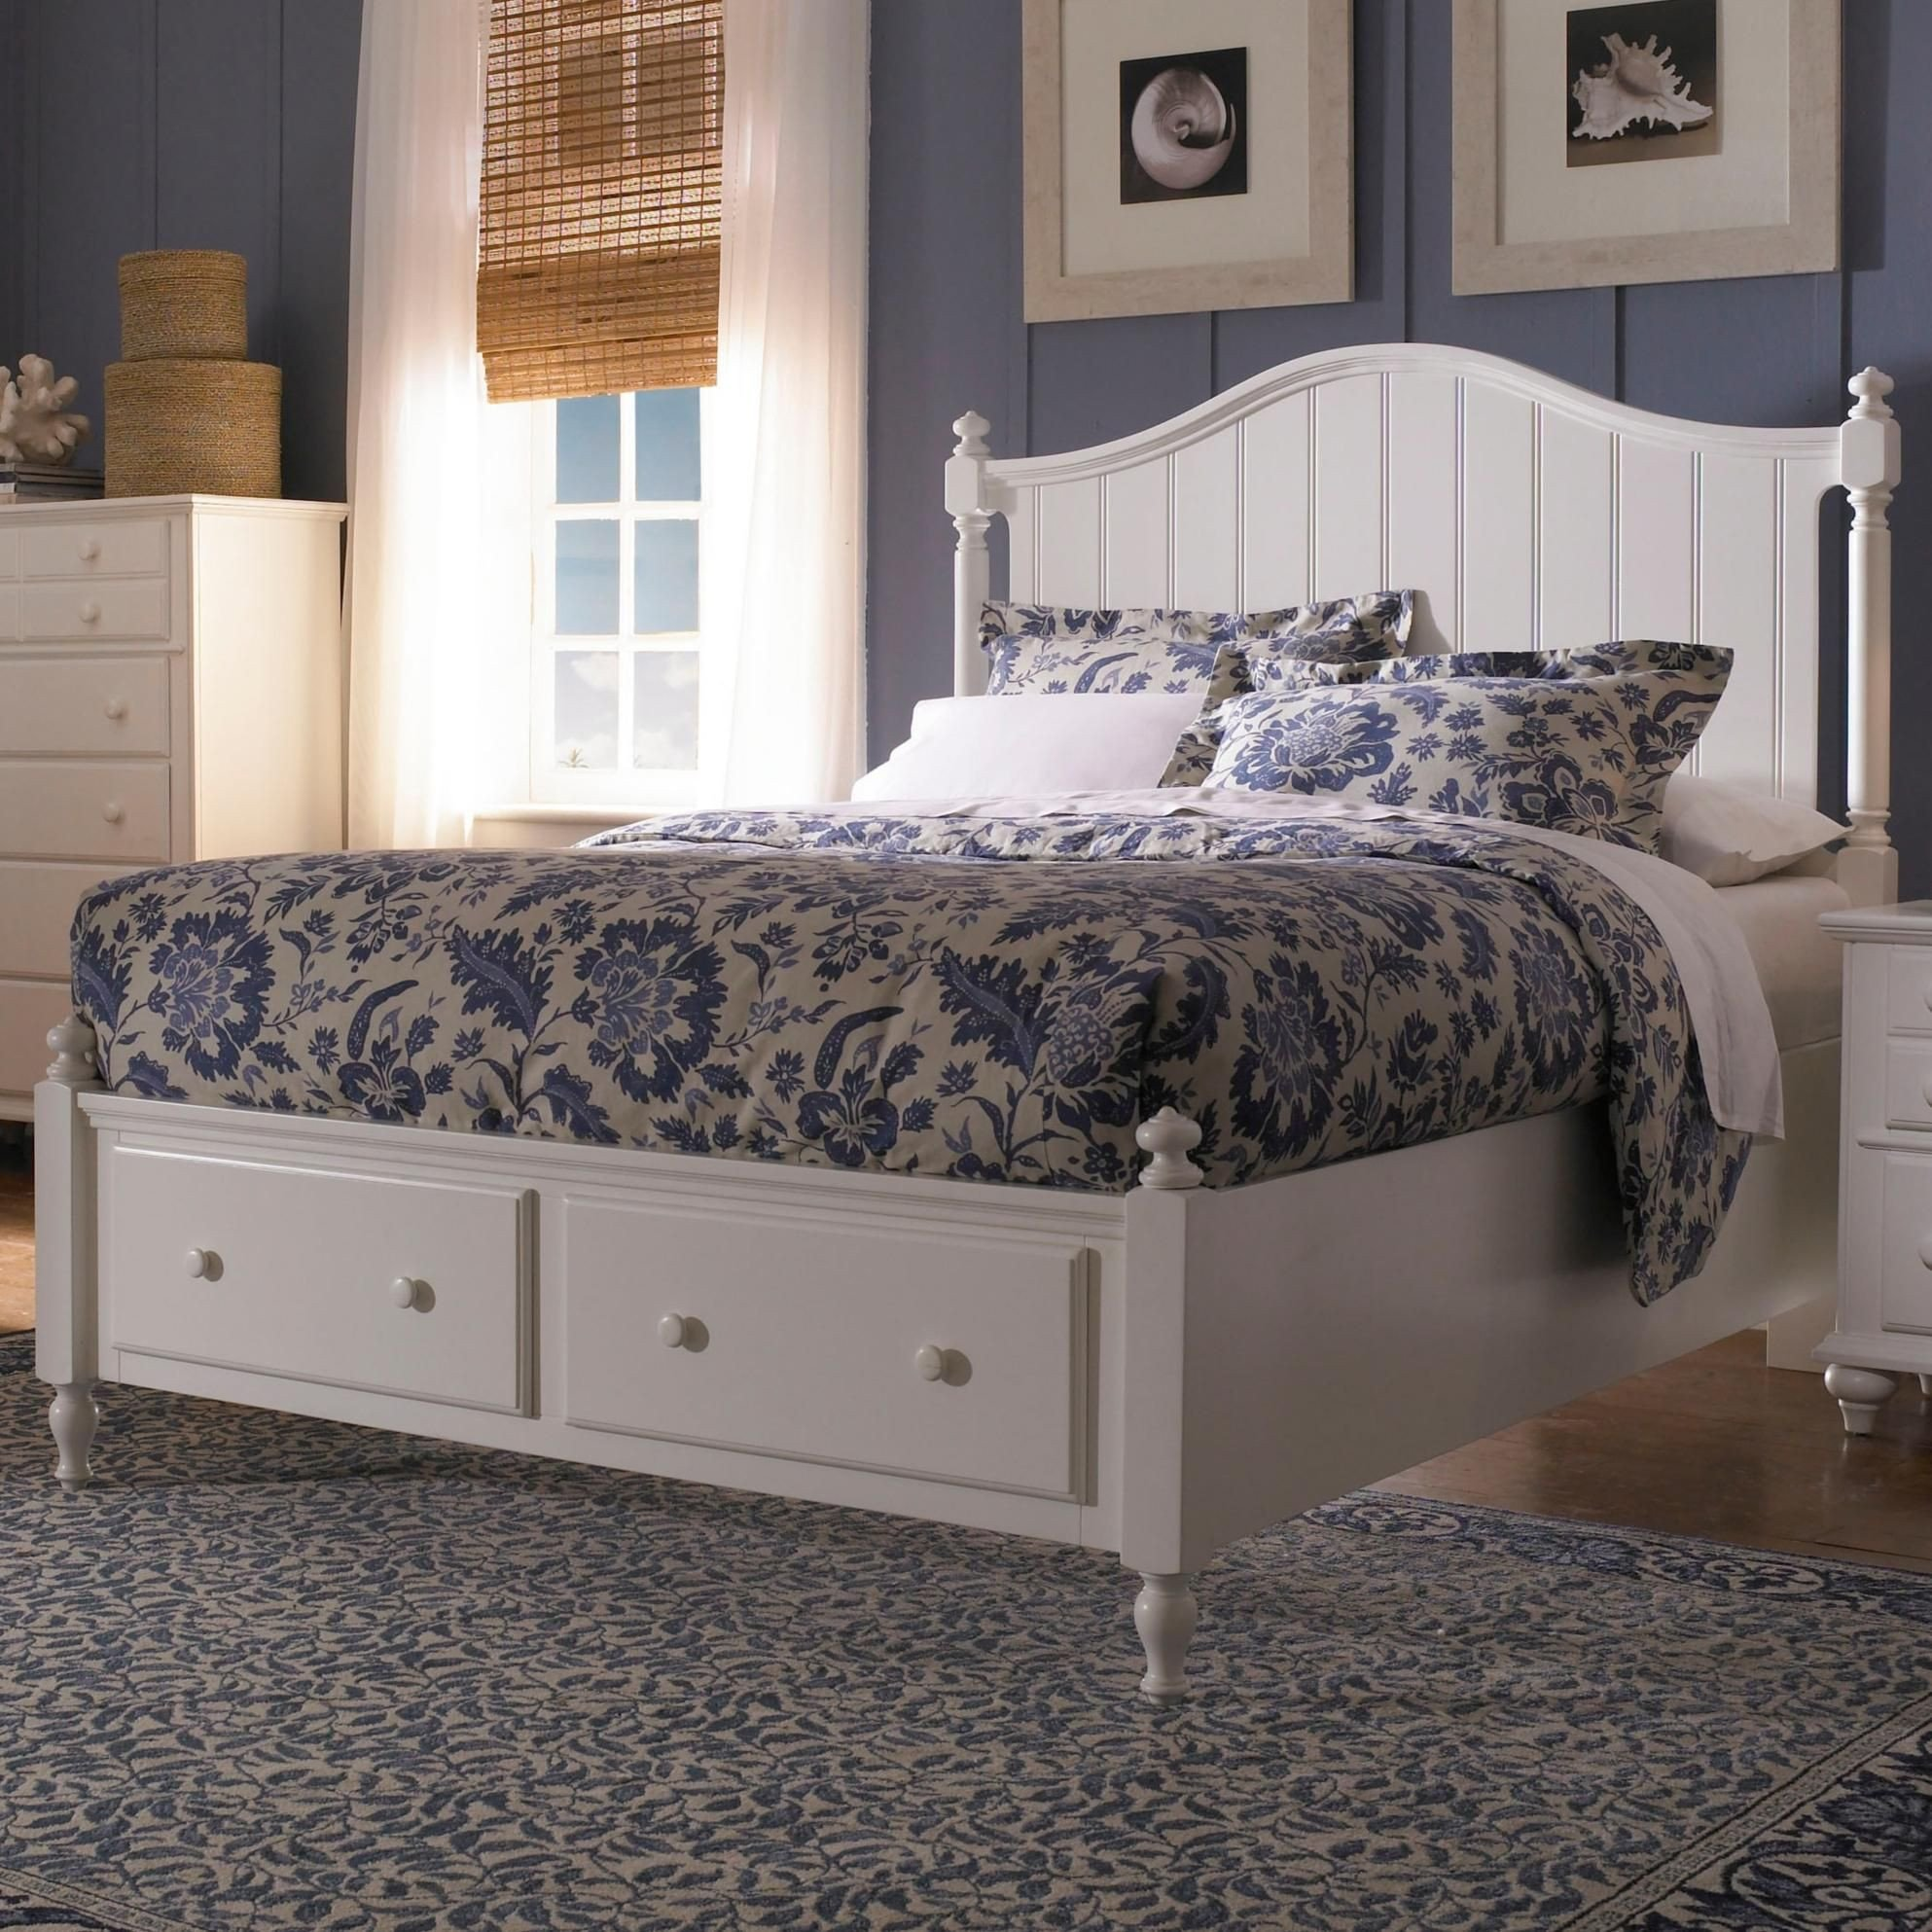 Value City Bedroom Set On Sale Beautiful Hayden Place Queen Headboard and Storage Footboard Bed by